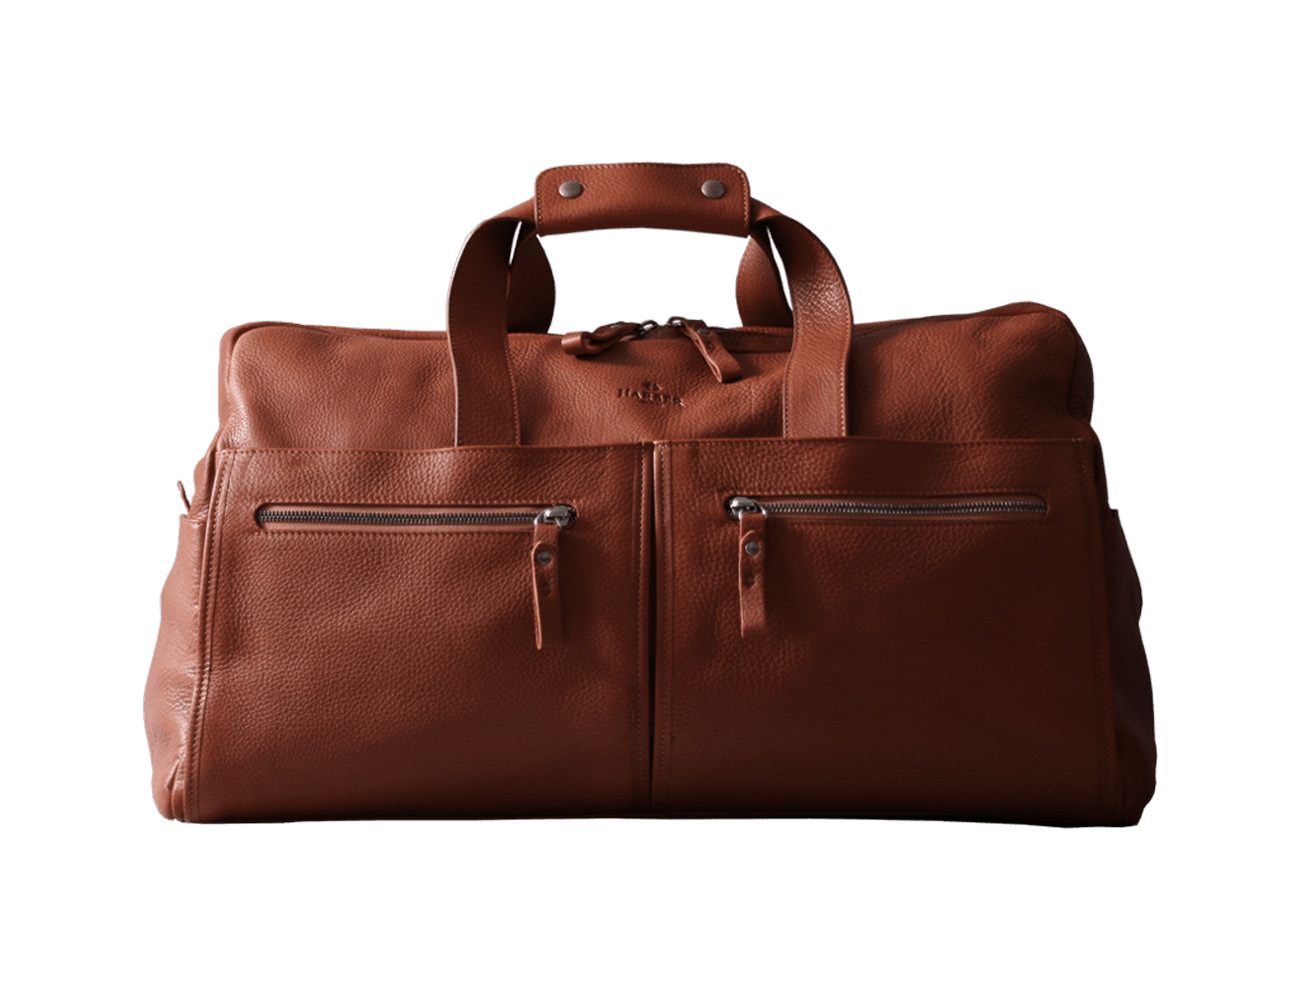 Free shipping on duffel bags and weekend bags at dolcehouse.ml Shop for duffels and weekend bags in leather, canvas and more. Totally free shipping and returns.